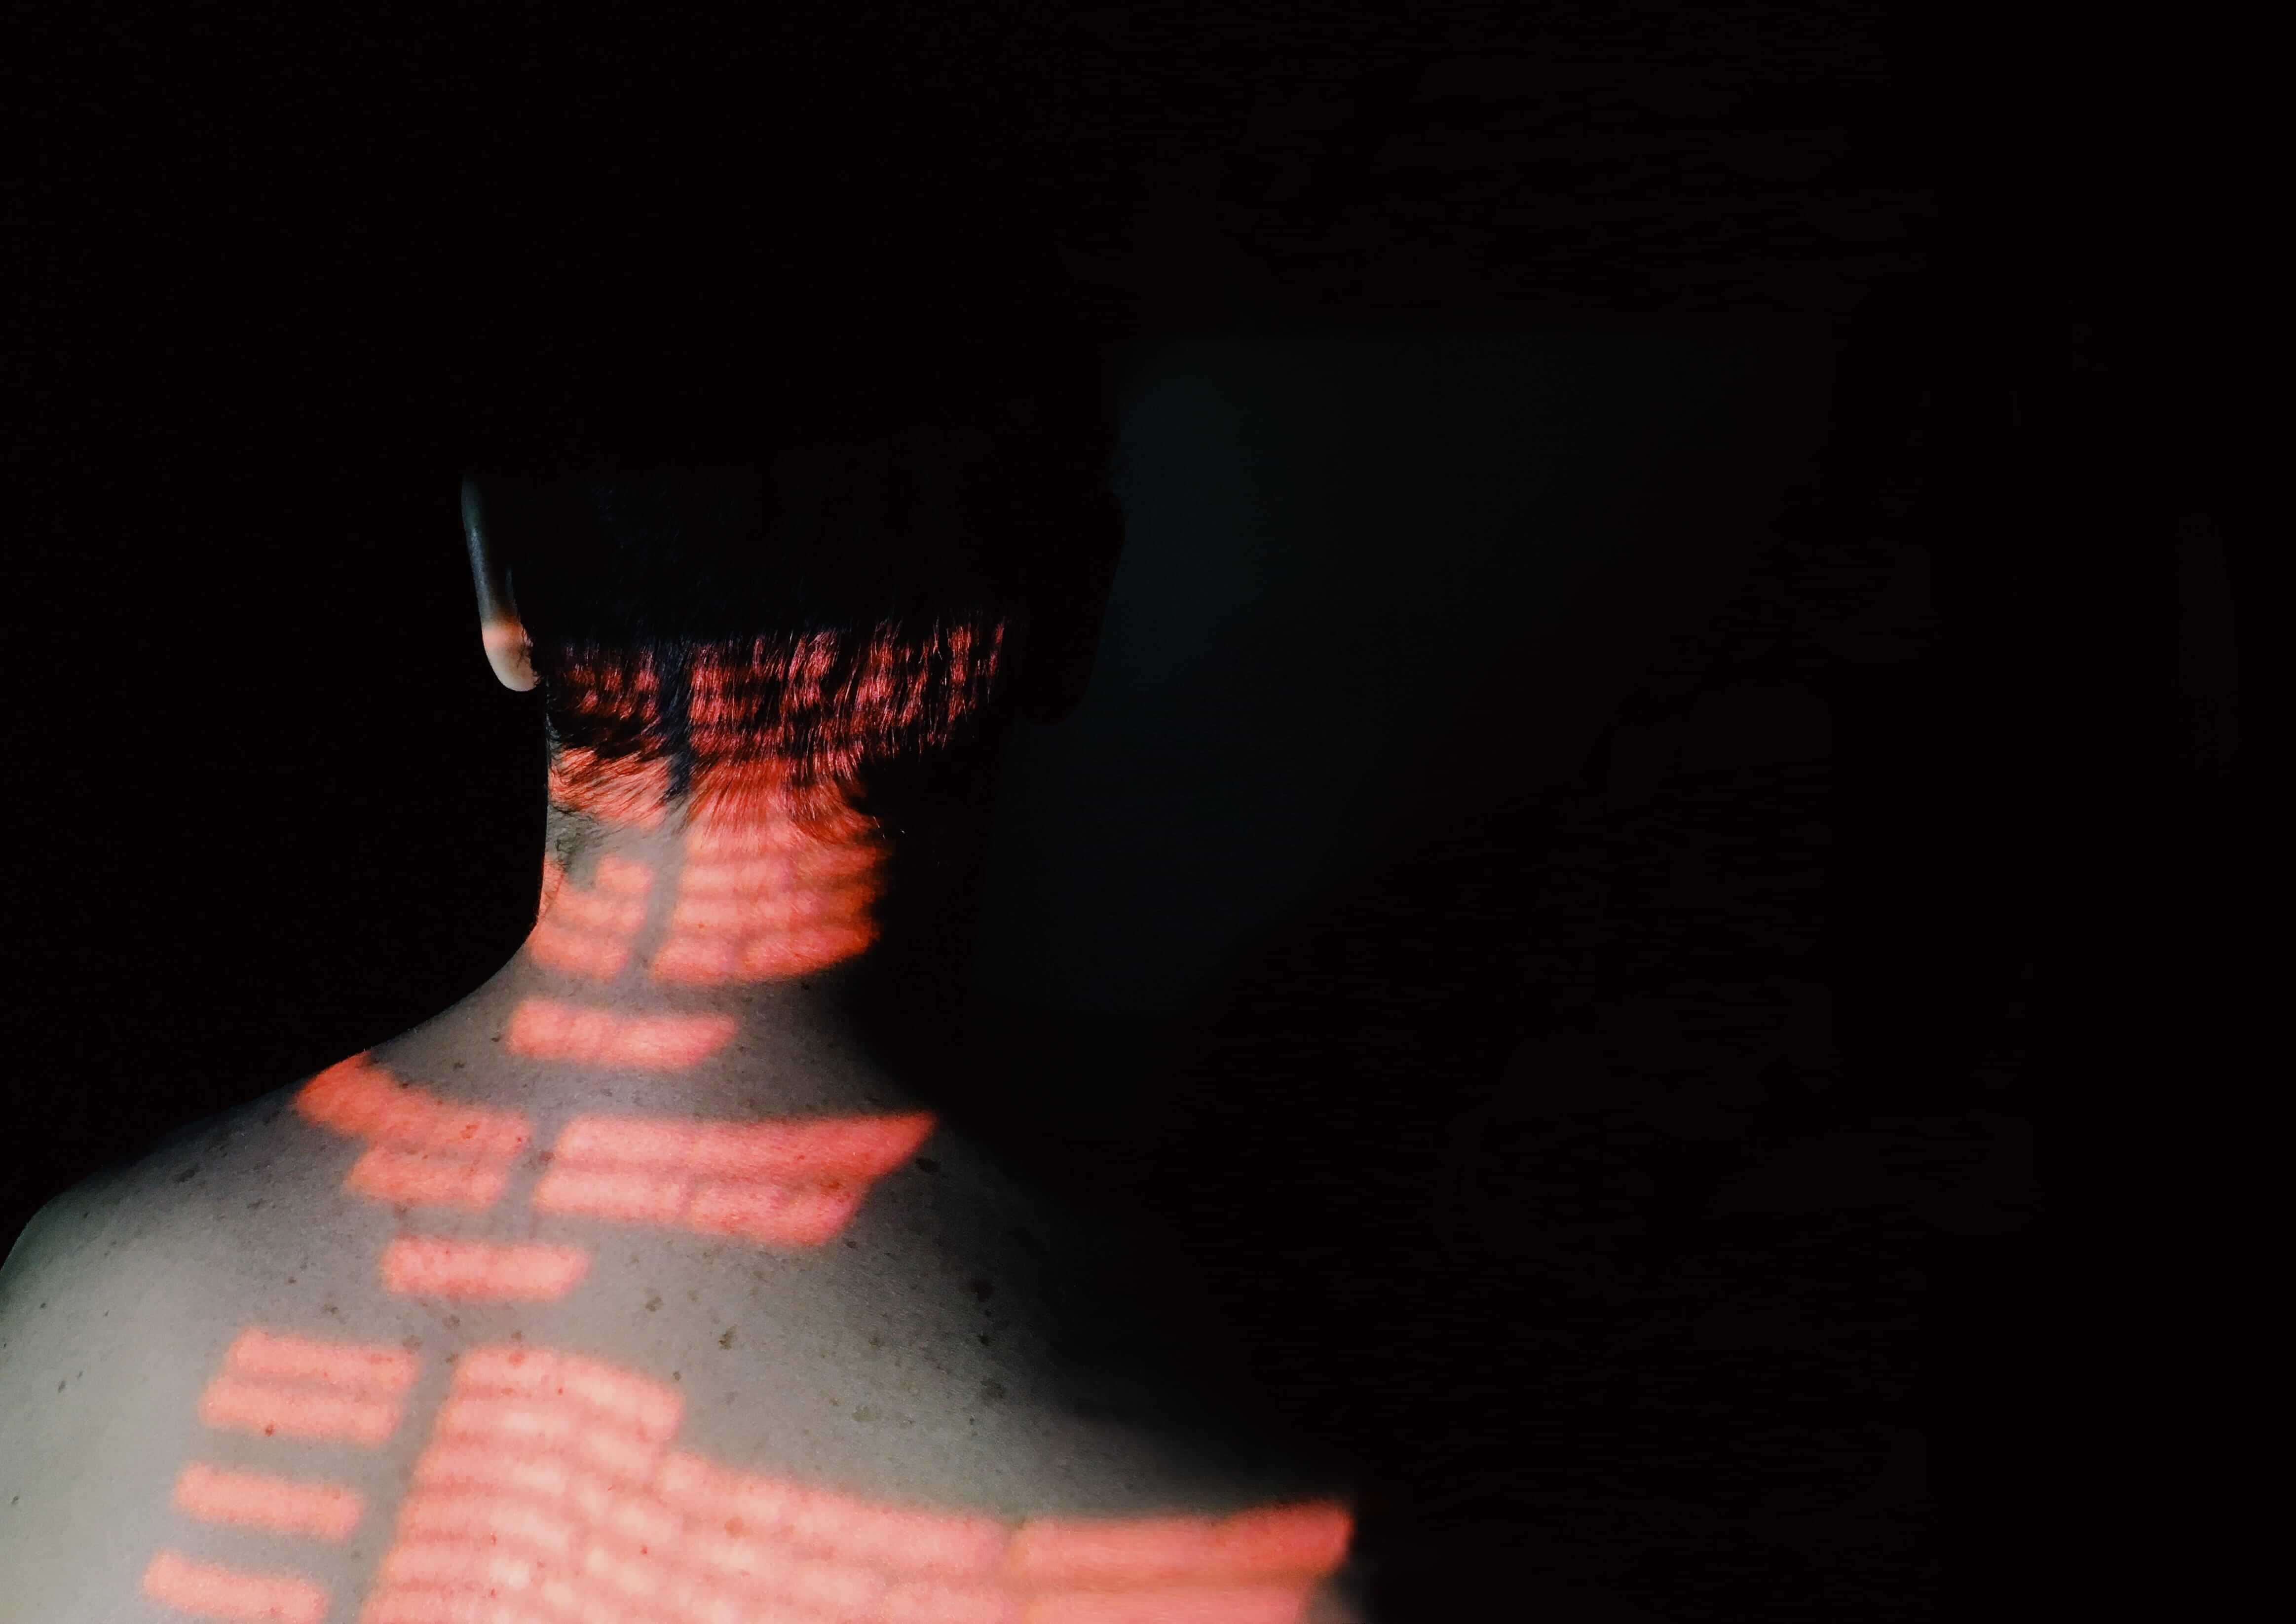 Studio photograph of man with light projection of red text on his back stock photograph by Alina Potapenko EyeEm